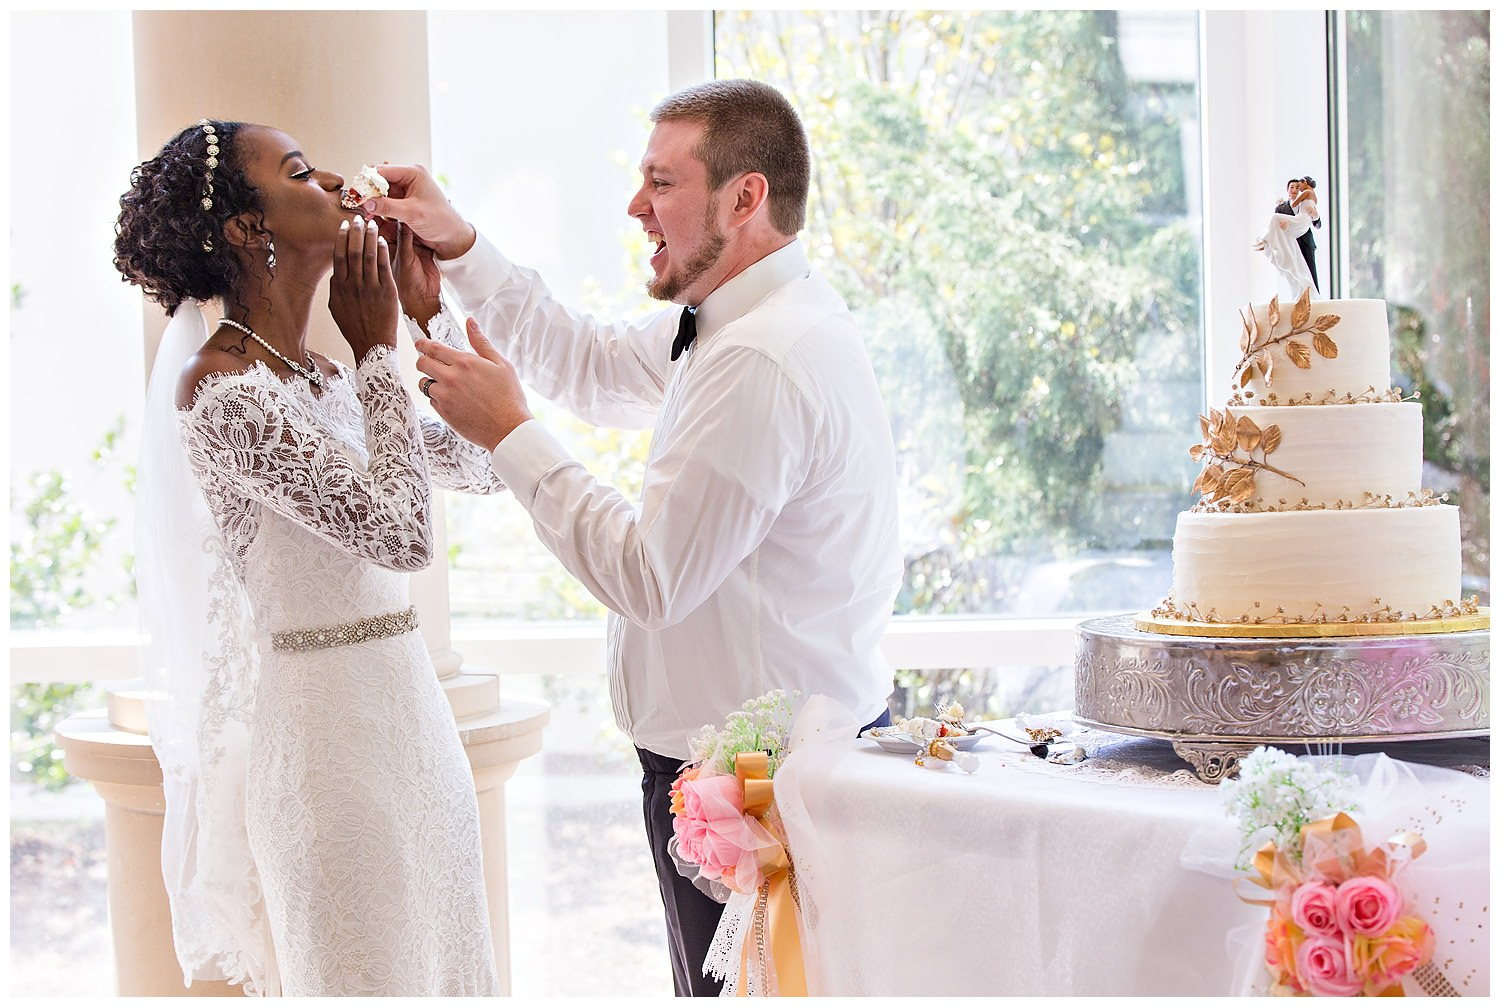 Feeding each other wedding cake